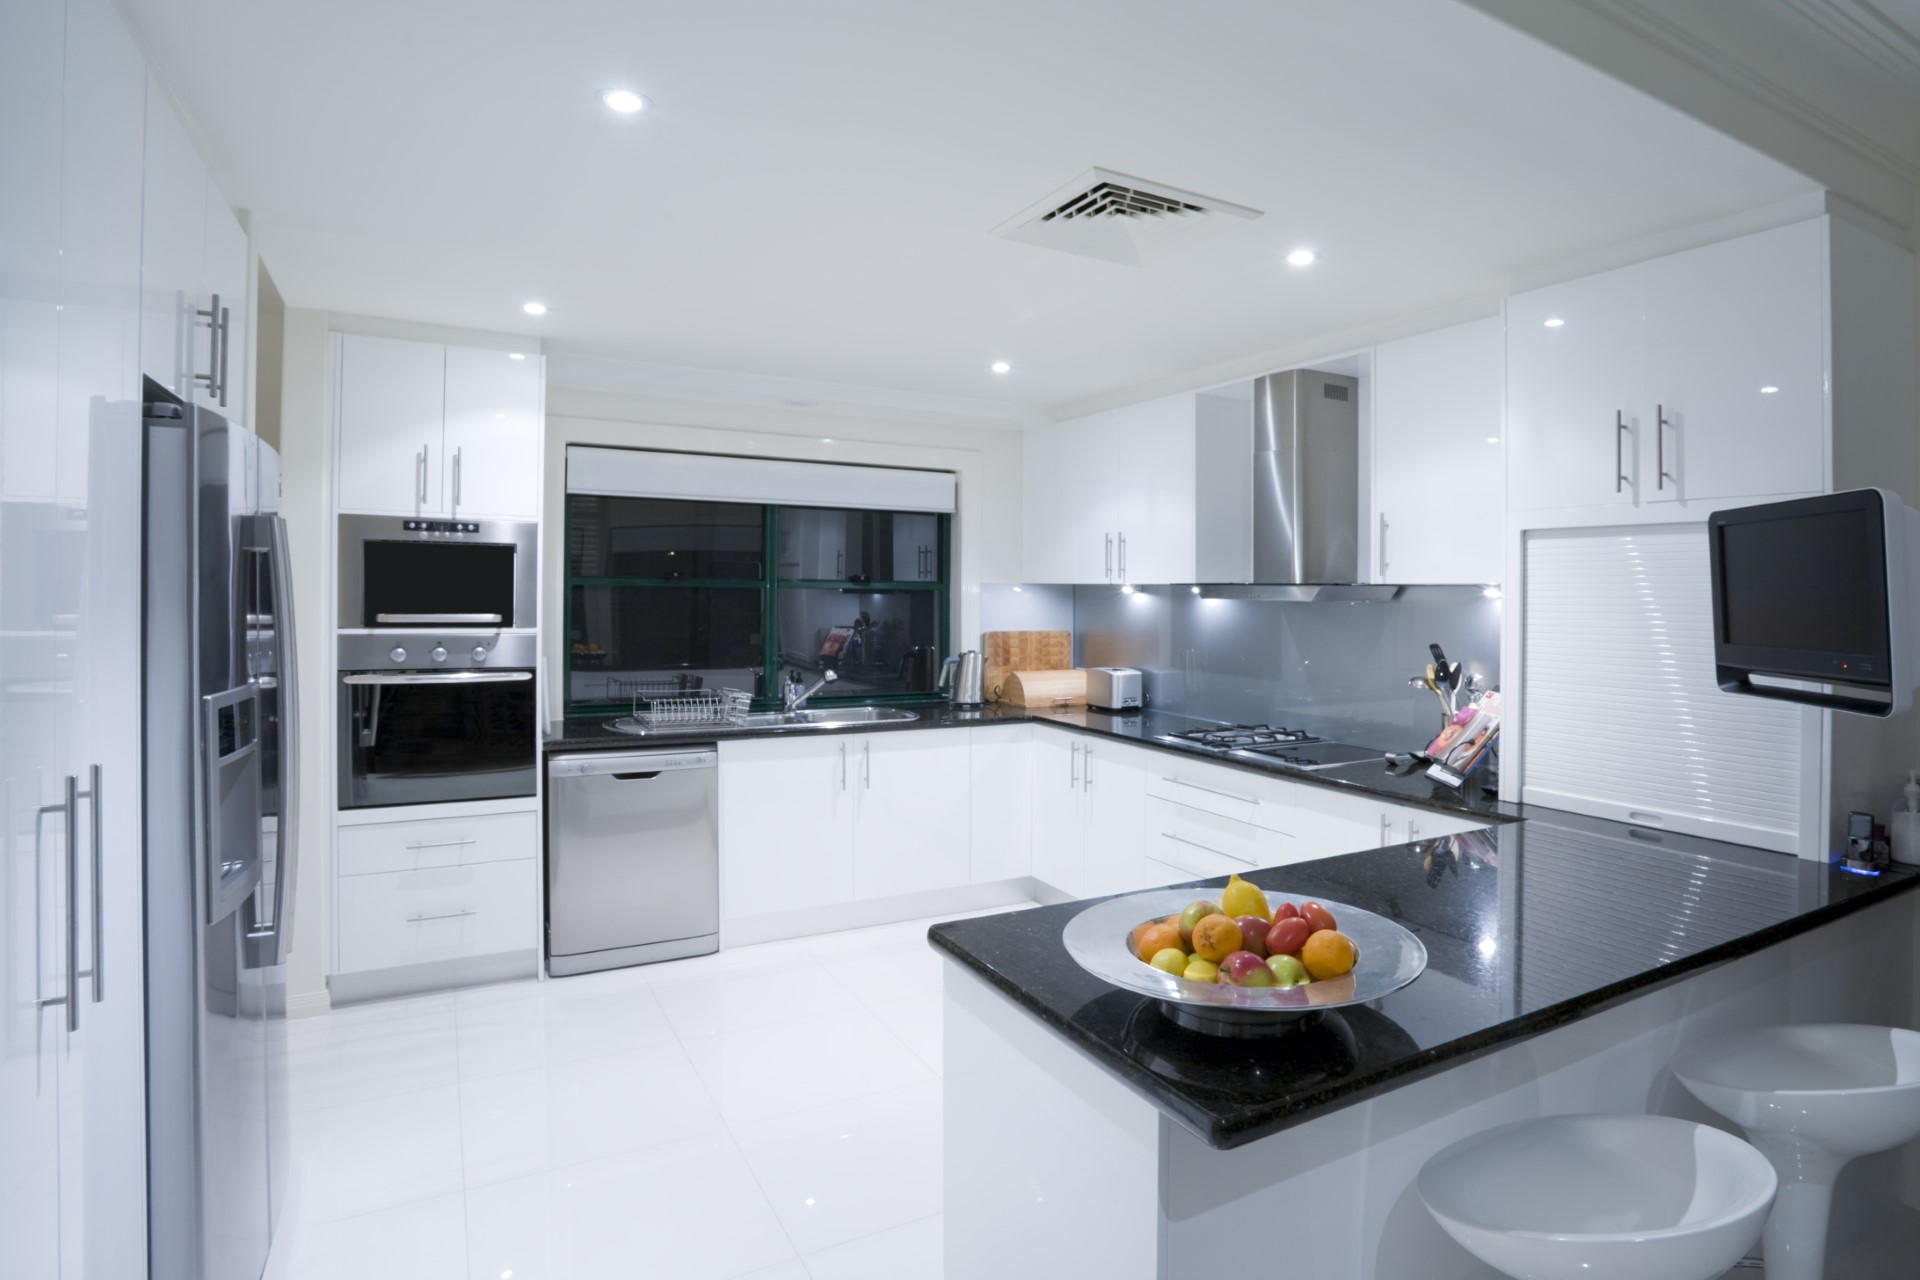 A modern kitchen with high gloss white cabinets, glossy black marble counter tops, glossy white tile floors, and stainless steel appliances. There is a bowl of fruit on the counter.